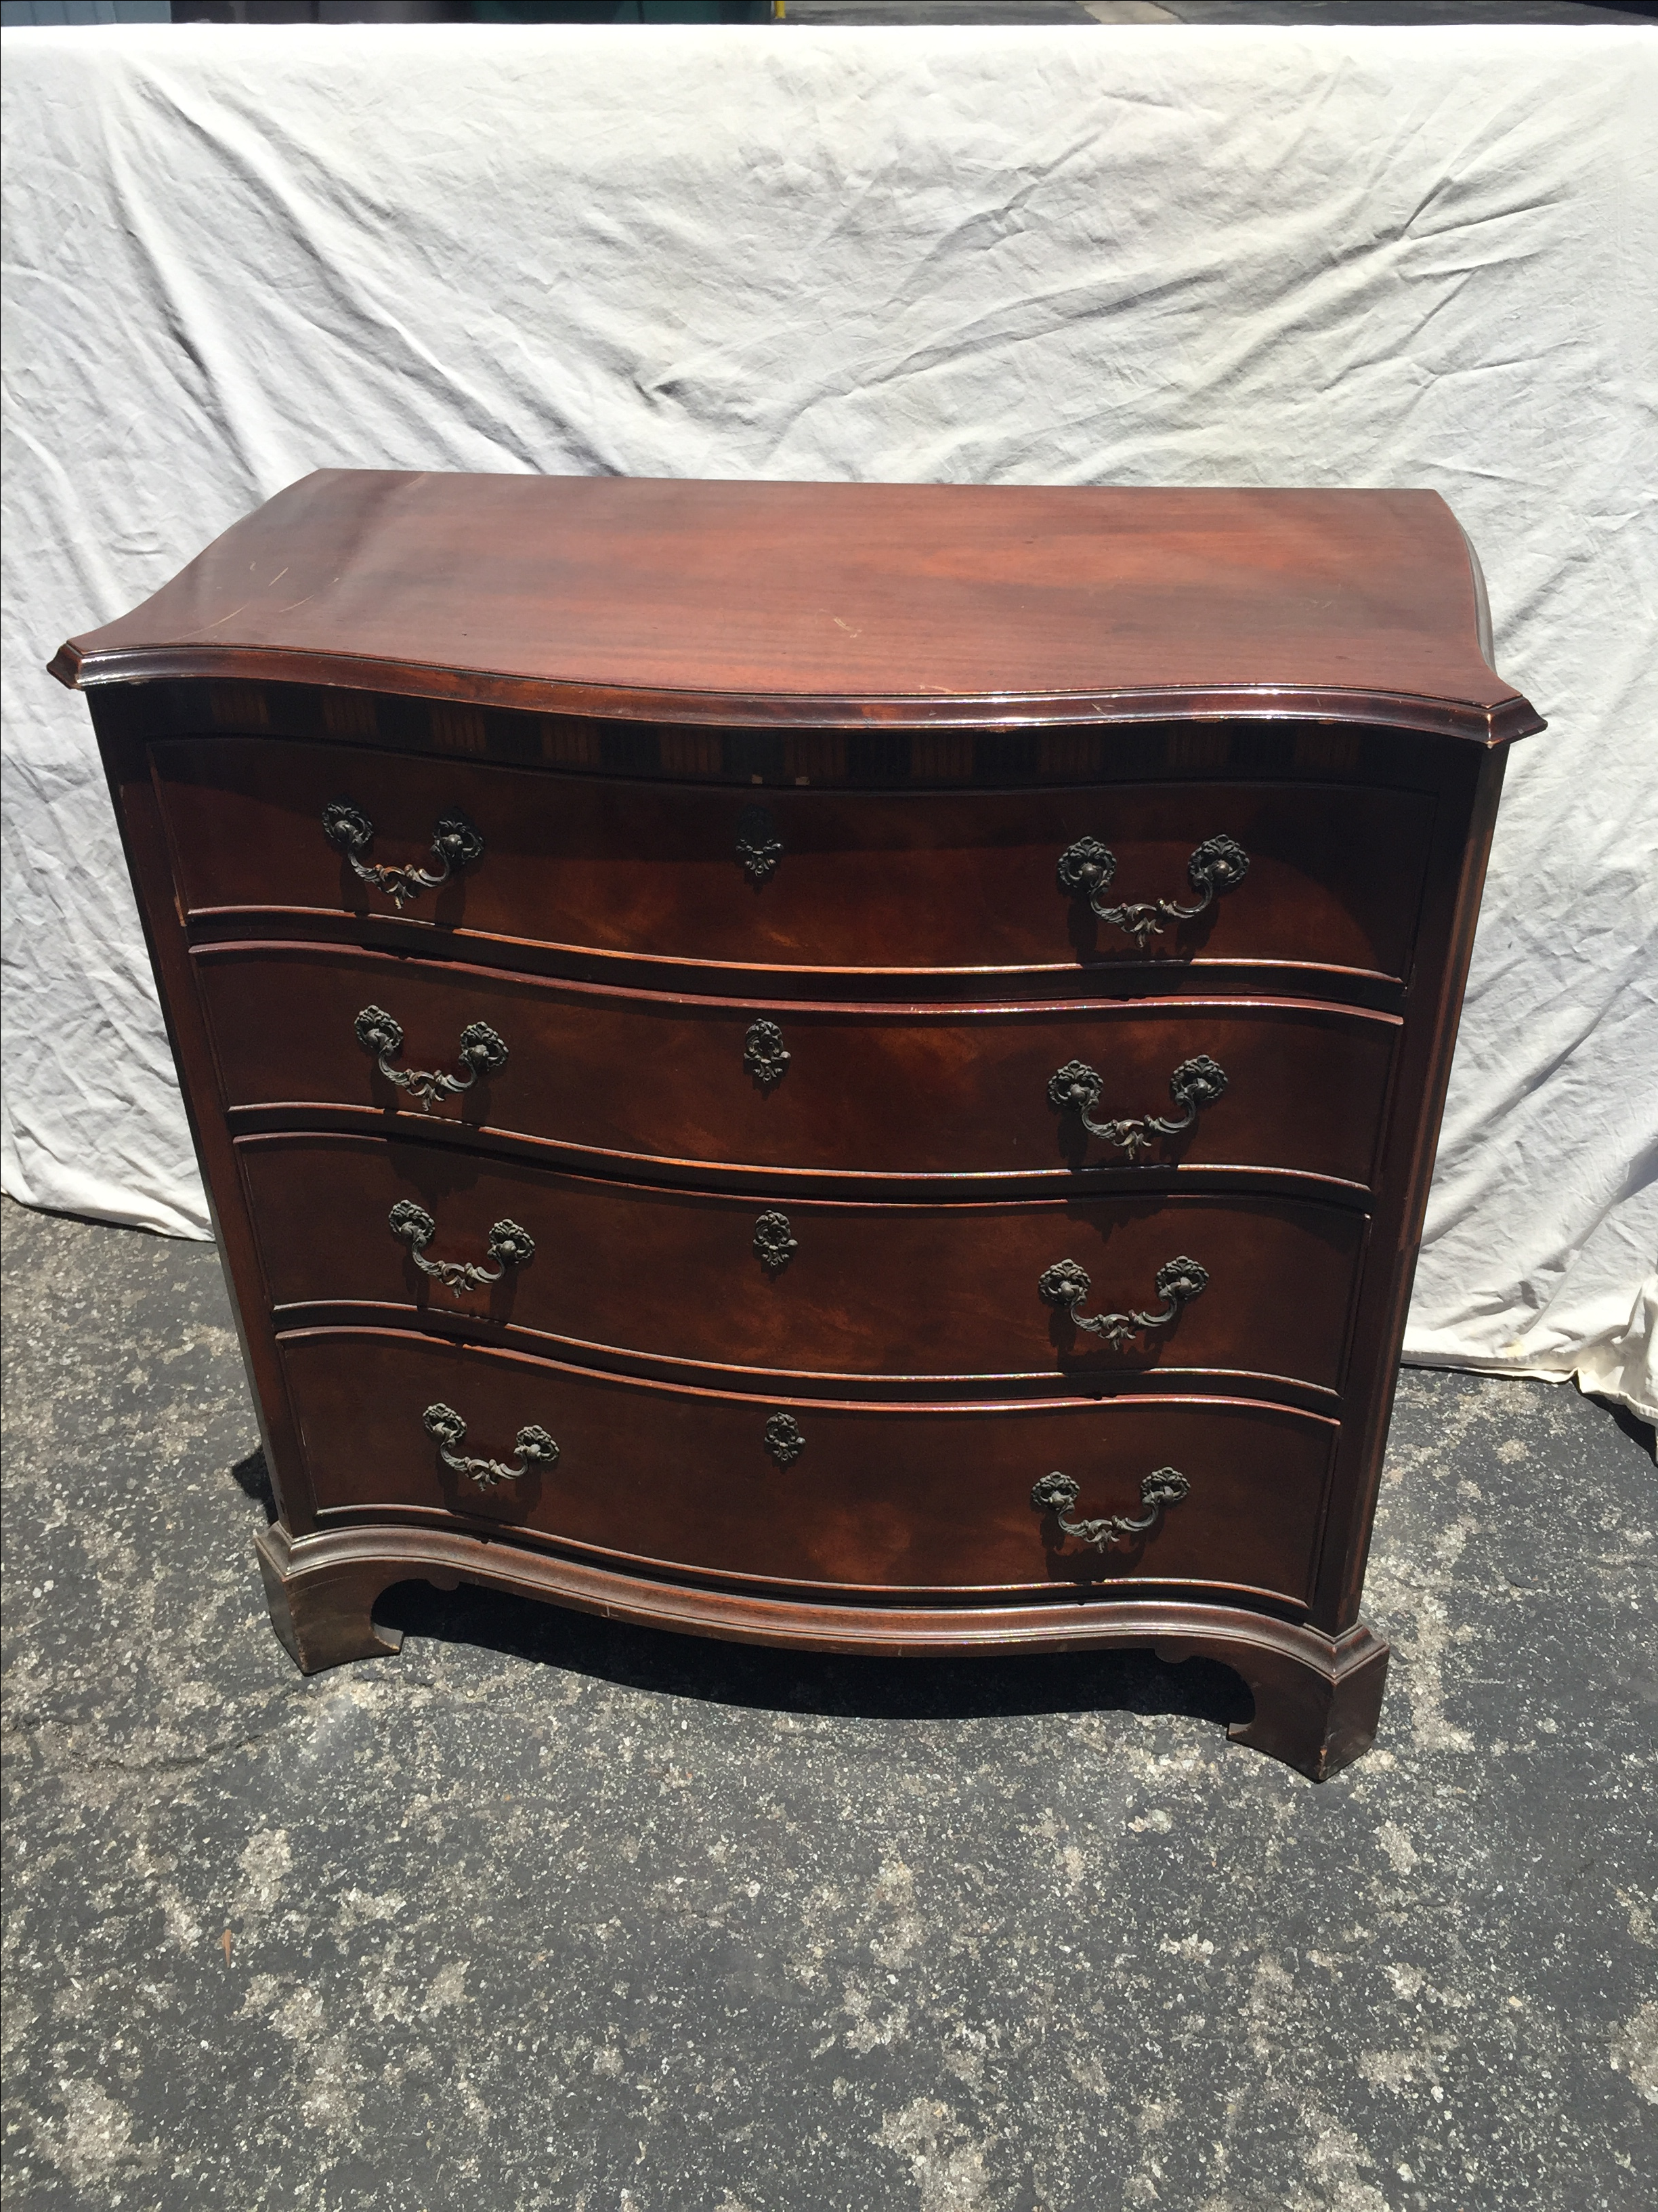 Great Old Colony Furniture Company Mahogany Dresser   Image 2 Of 4